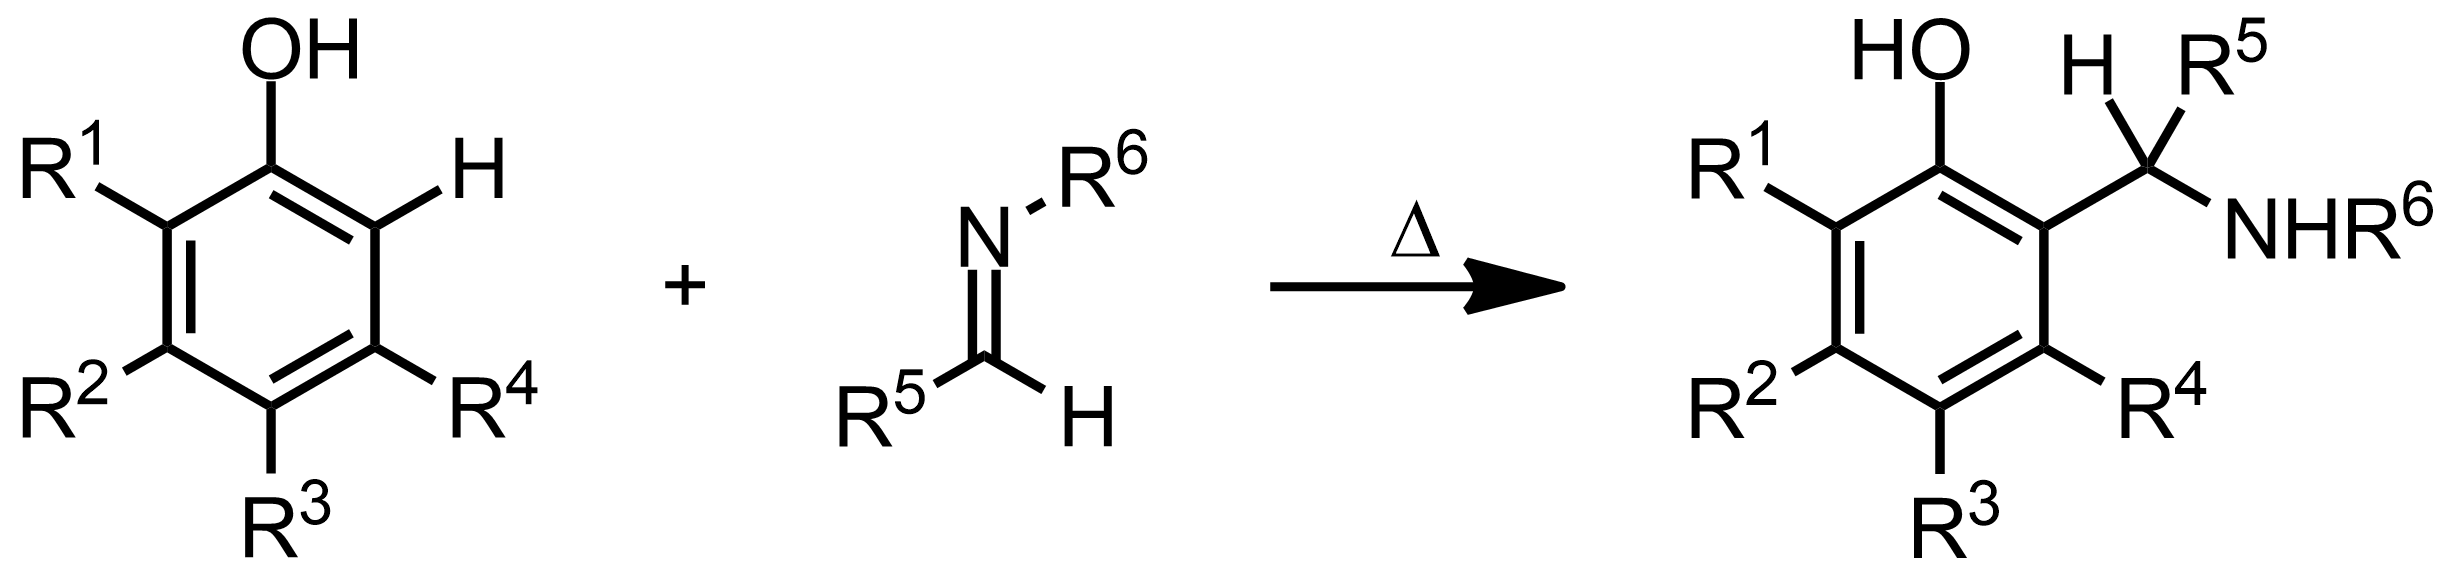 Schematic representation of the Betti Reaction.